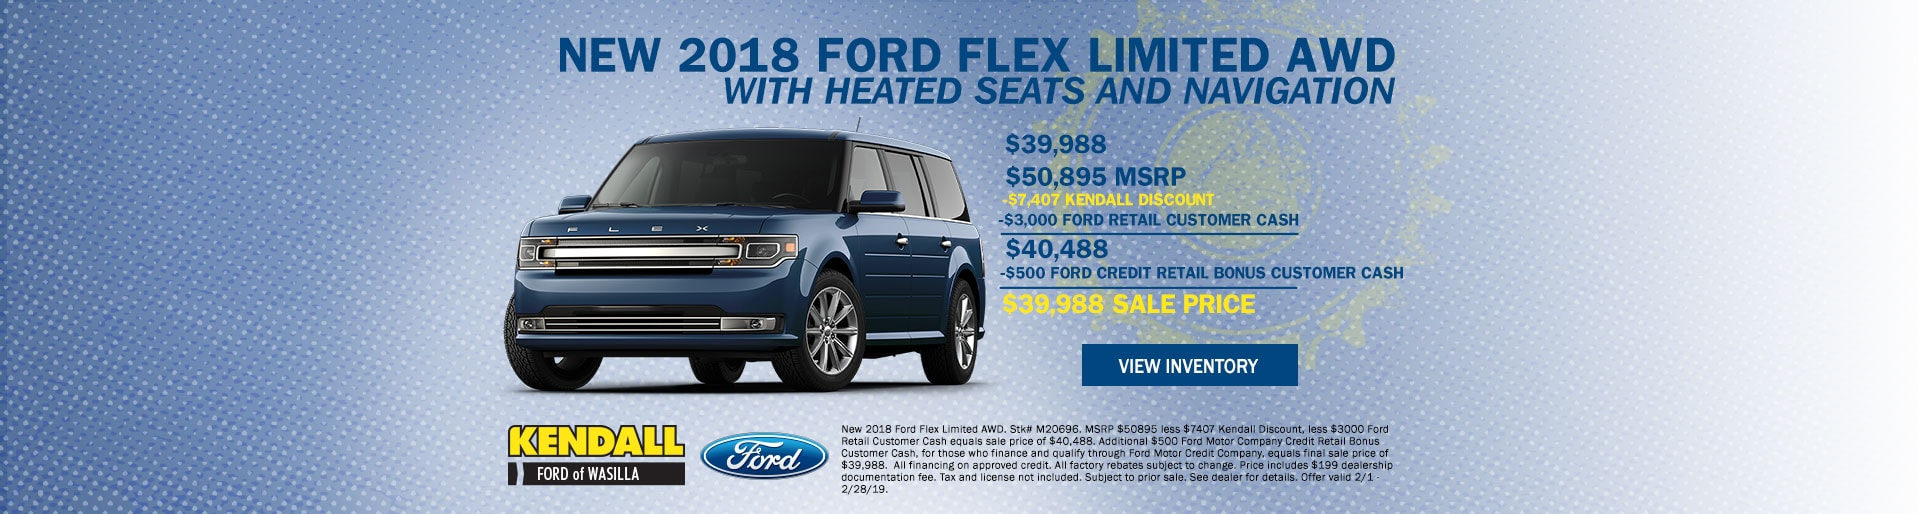 New Certified Used Ford Cars Trucks Suvs For Sale 7 Way Plug Wiring Previous Next